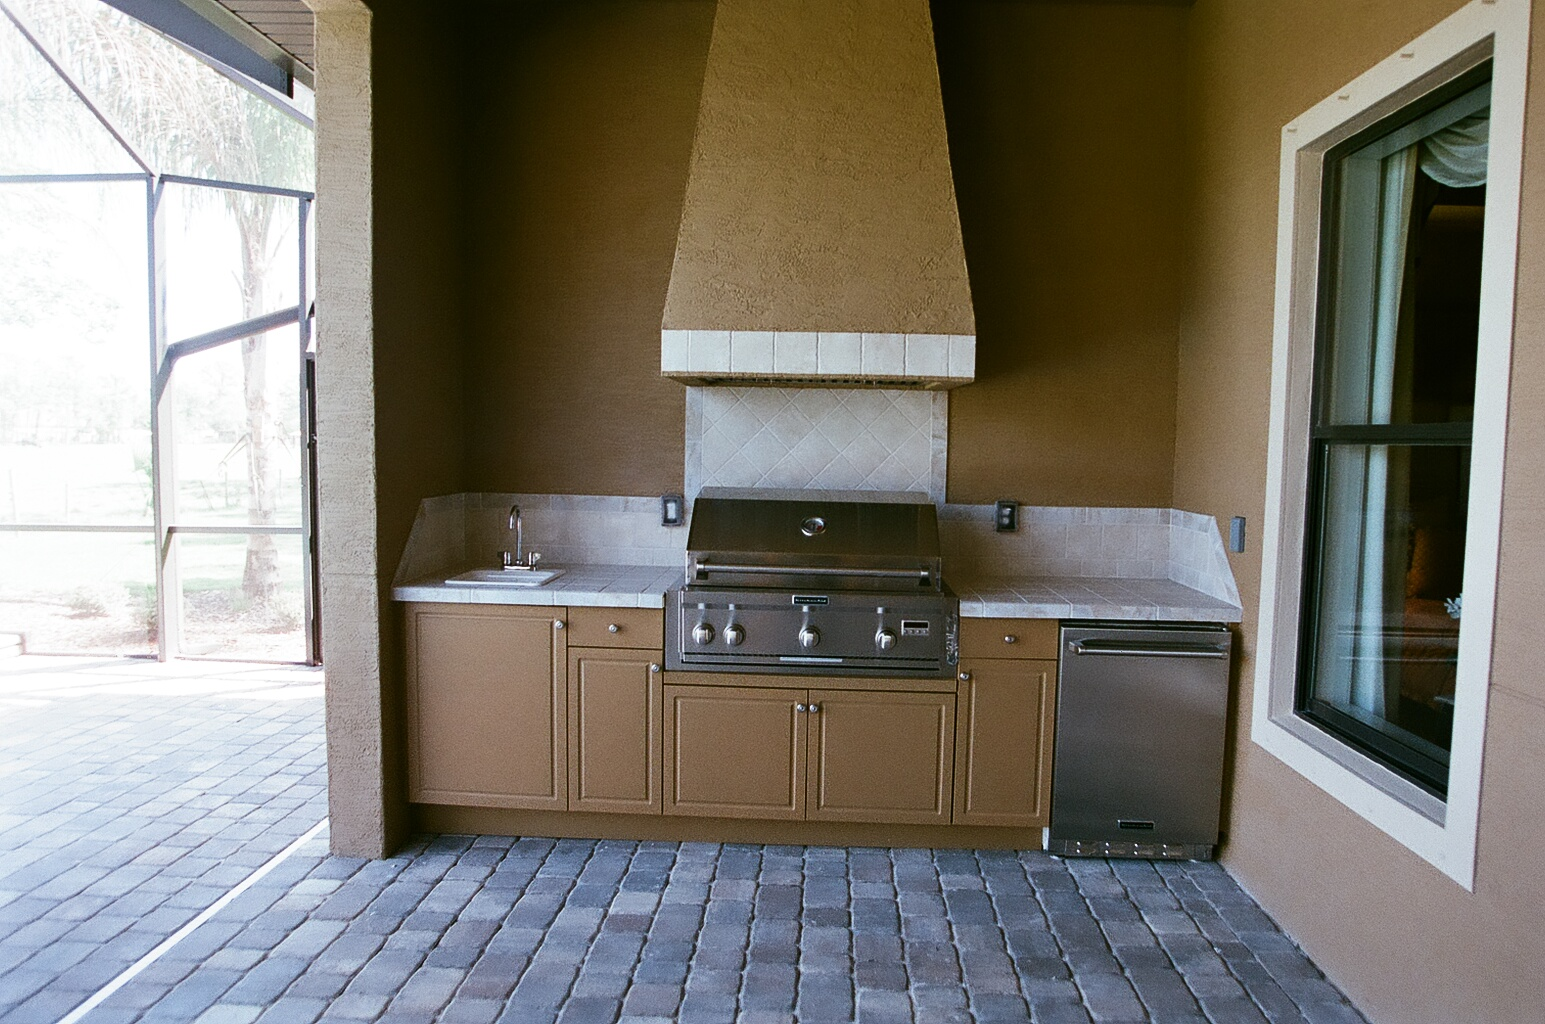 Seaboard Shown In Sandshade Color For Beautiful, Durable Outdoor Kitchen  Cabinets ...